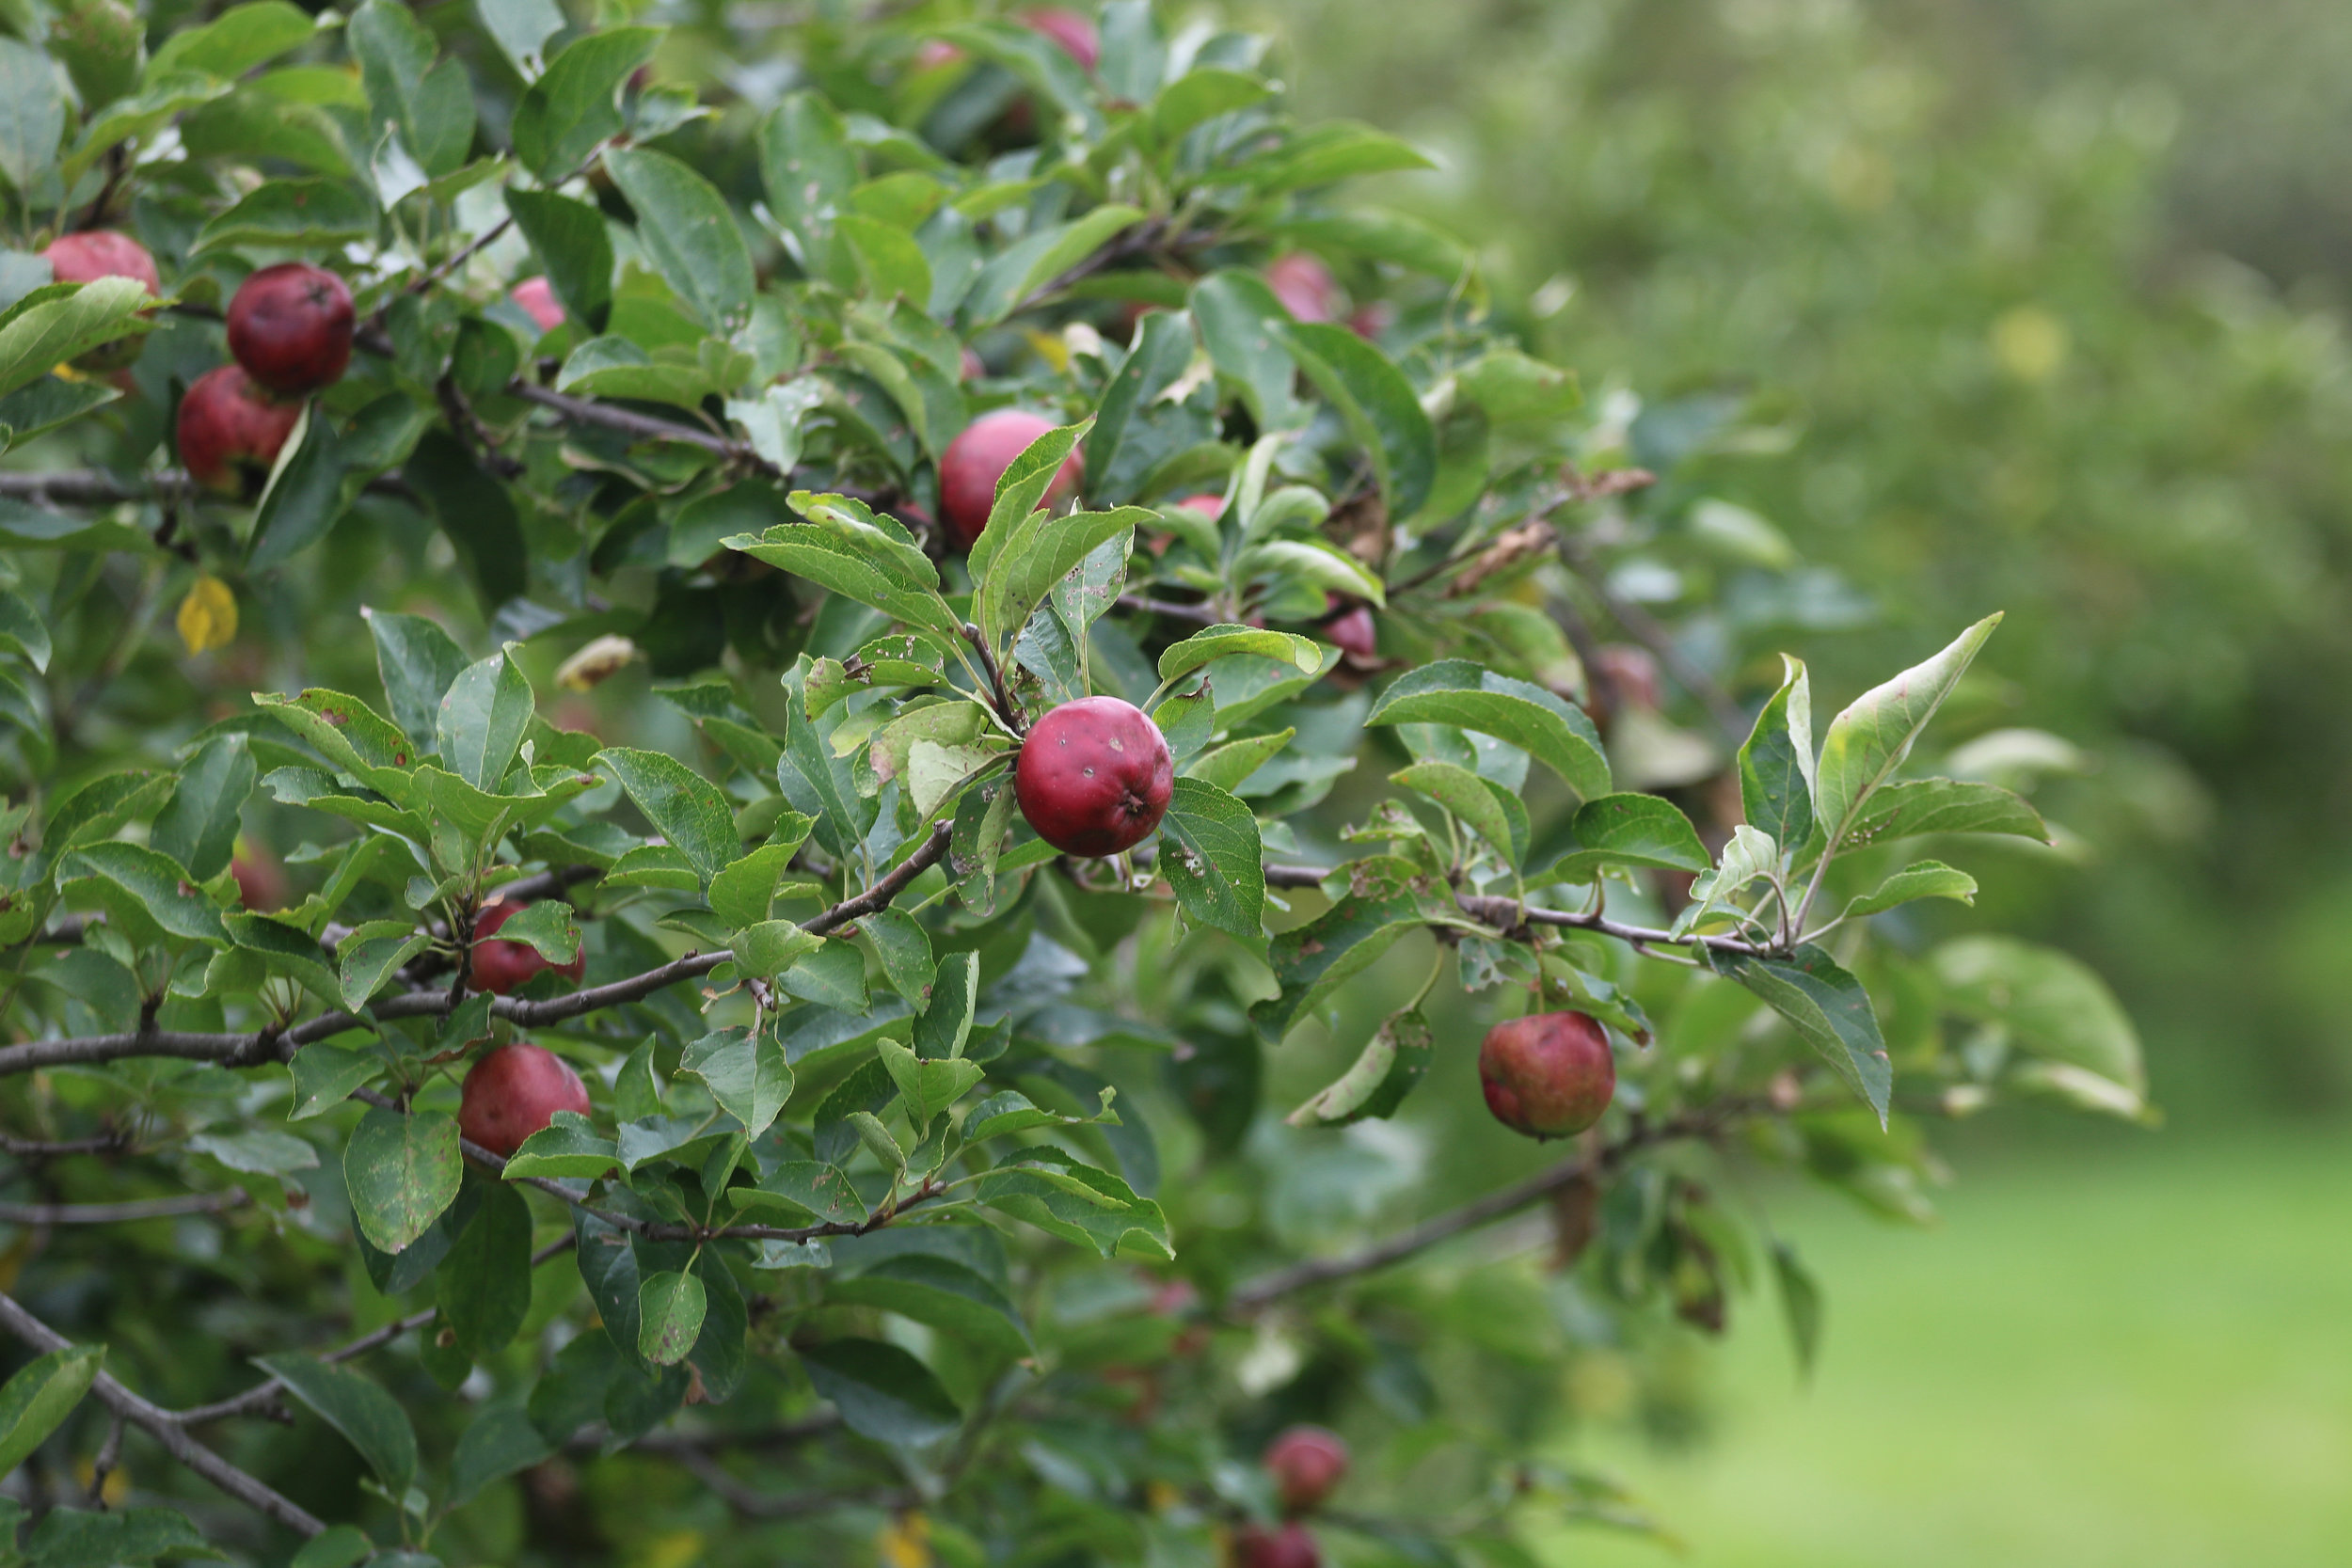 Rare apples ripen in the Seed Savers Exchange Historic Orchard this August.